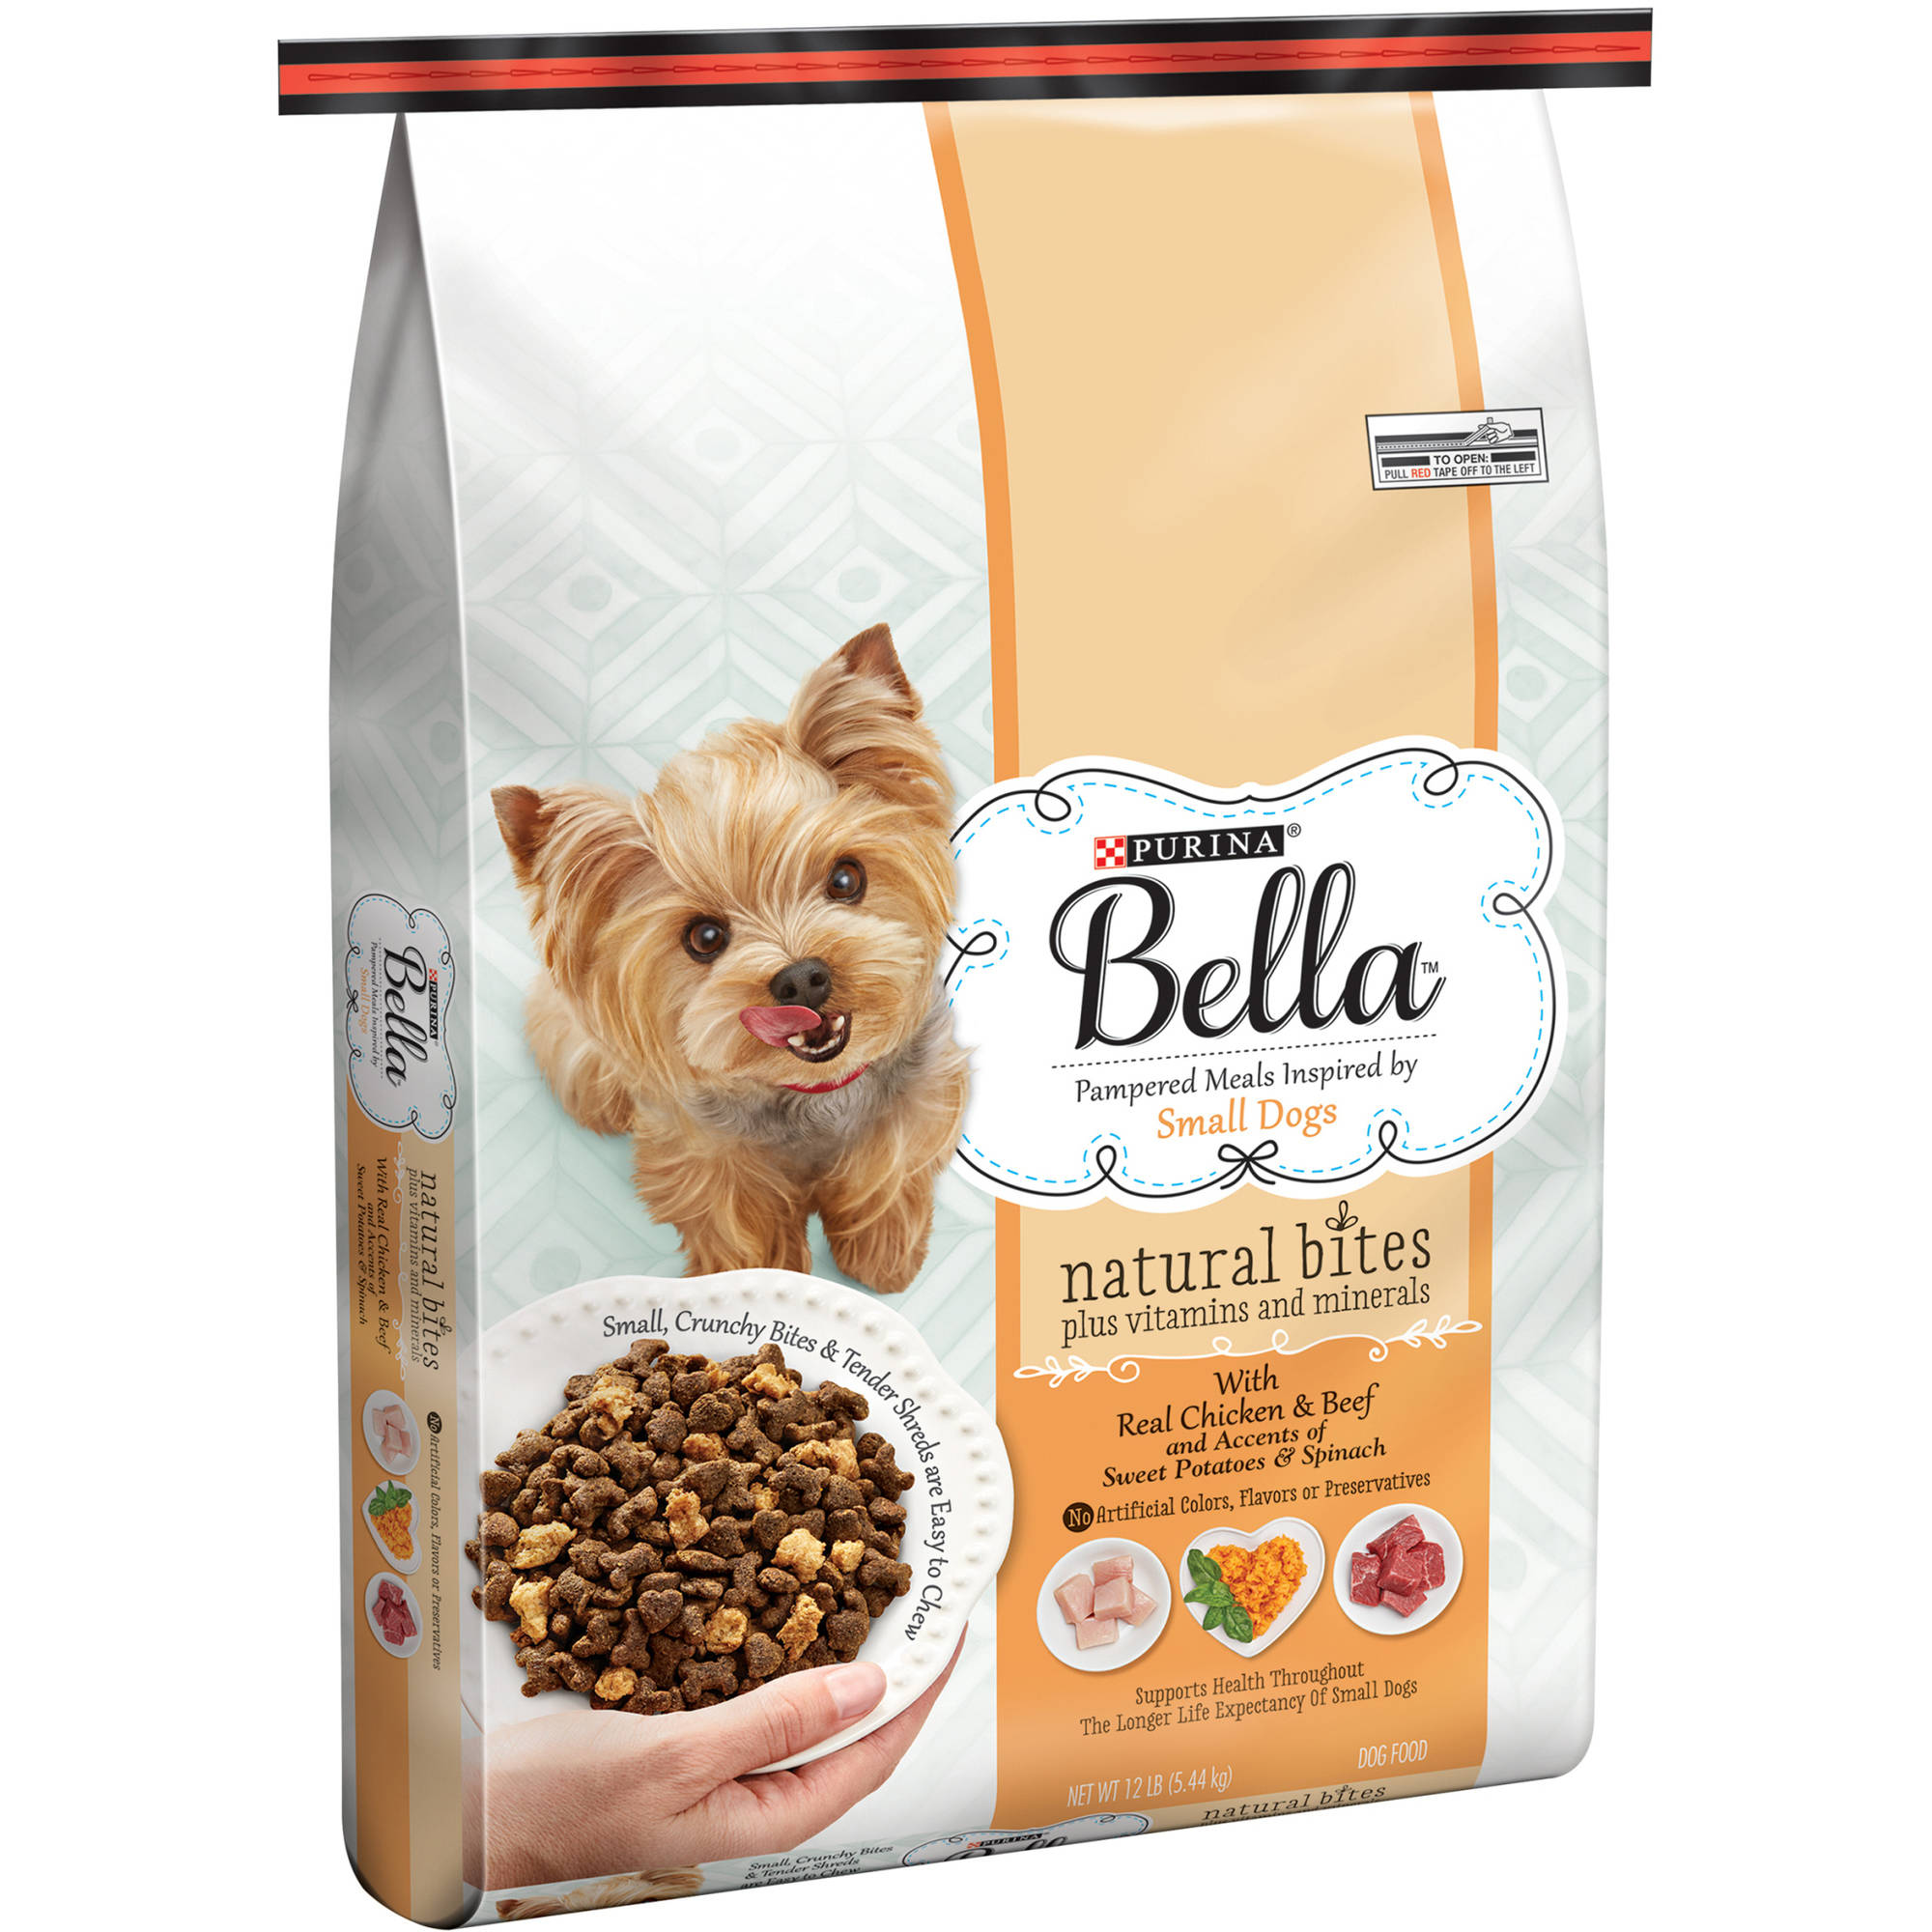 Purina Bella Natural Bites Plus Vitamins and Minerals With Real Chicken & Beef and Accents of Sweet Potatoes & Spinach Adult Dry Dog Food 12 lb. Bag